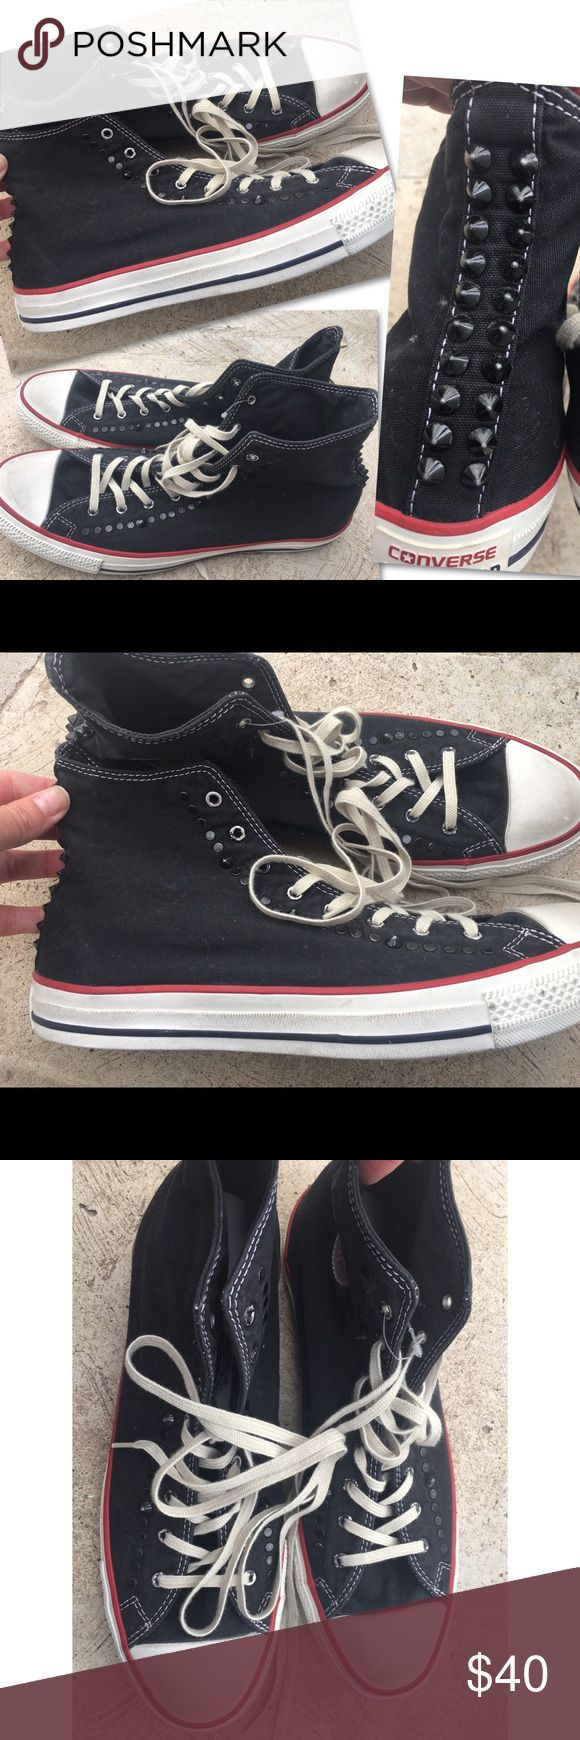 CONVERSE ALL STAR STUDDED BLACK HIGH TOP SNEAKERS CONVERSE ALL STAR  STUDDED BLACK HIGH TOP SNEAKERS SZ 11 RETAILS $80 Converse Shoes Sneakers